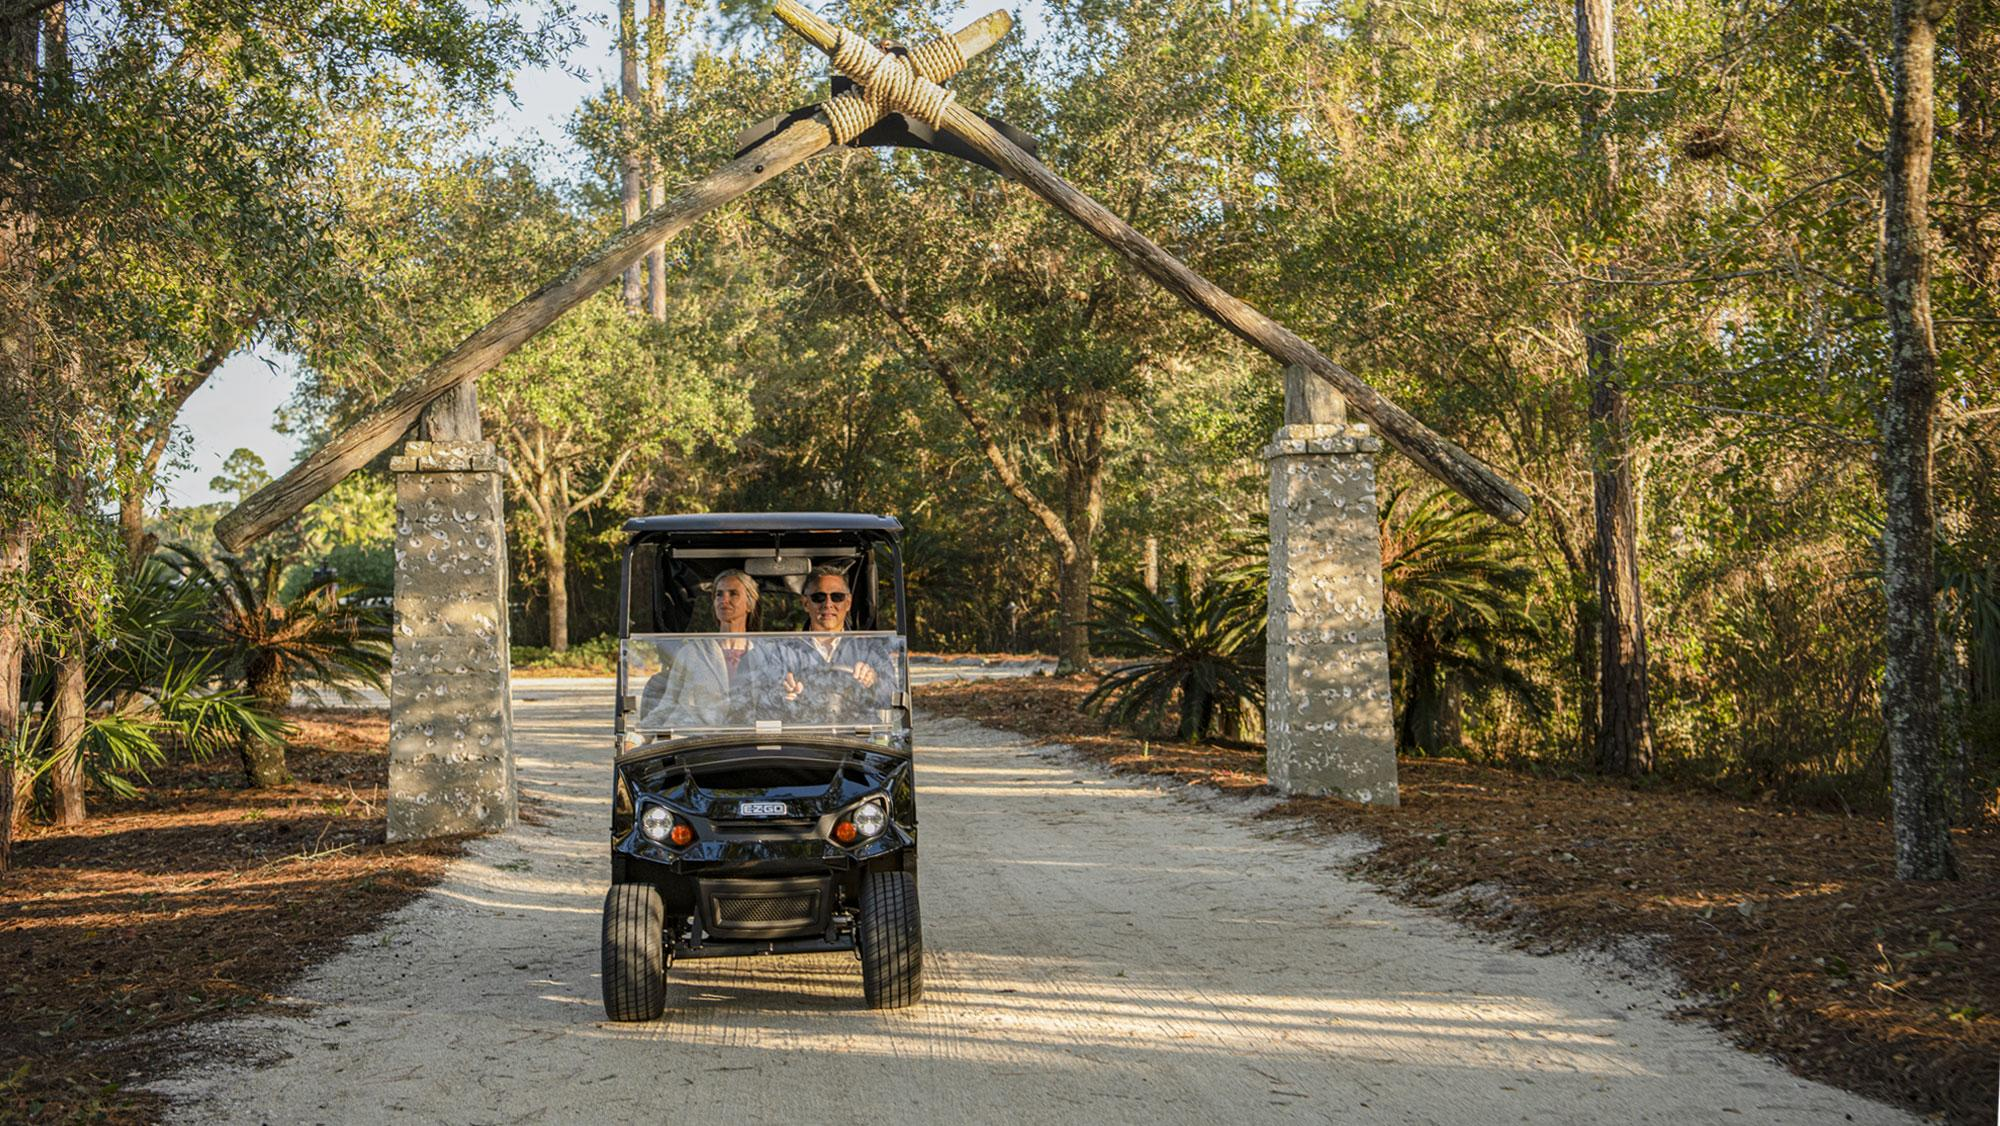 EZGO Express S2 Personal Golf Cart with Top and Windshield Accessories